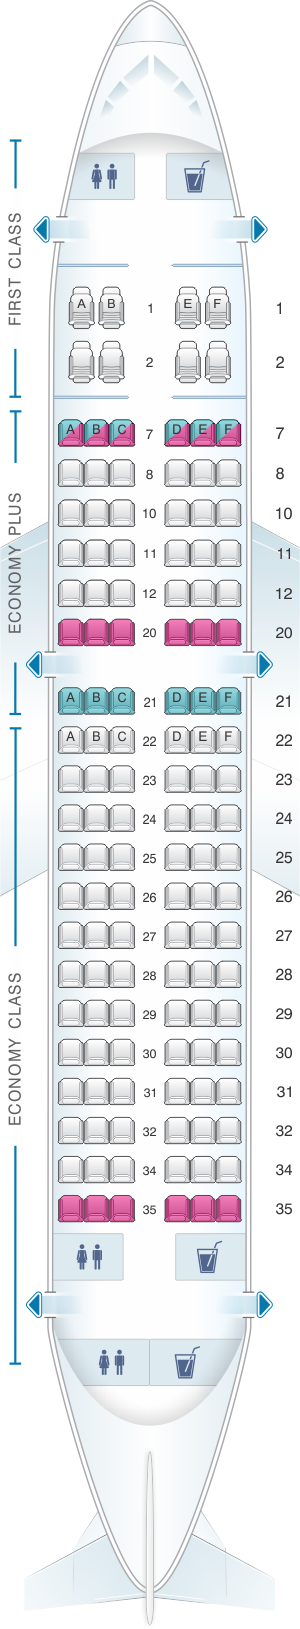 Seat map for United Airlines Airbus A319 - version 1